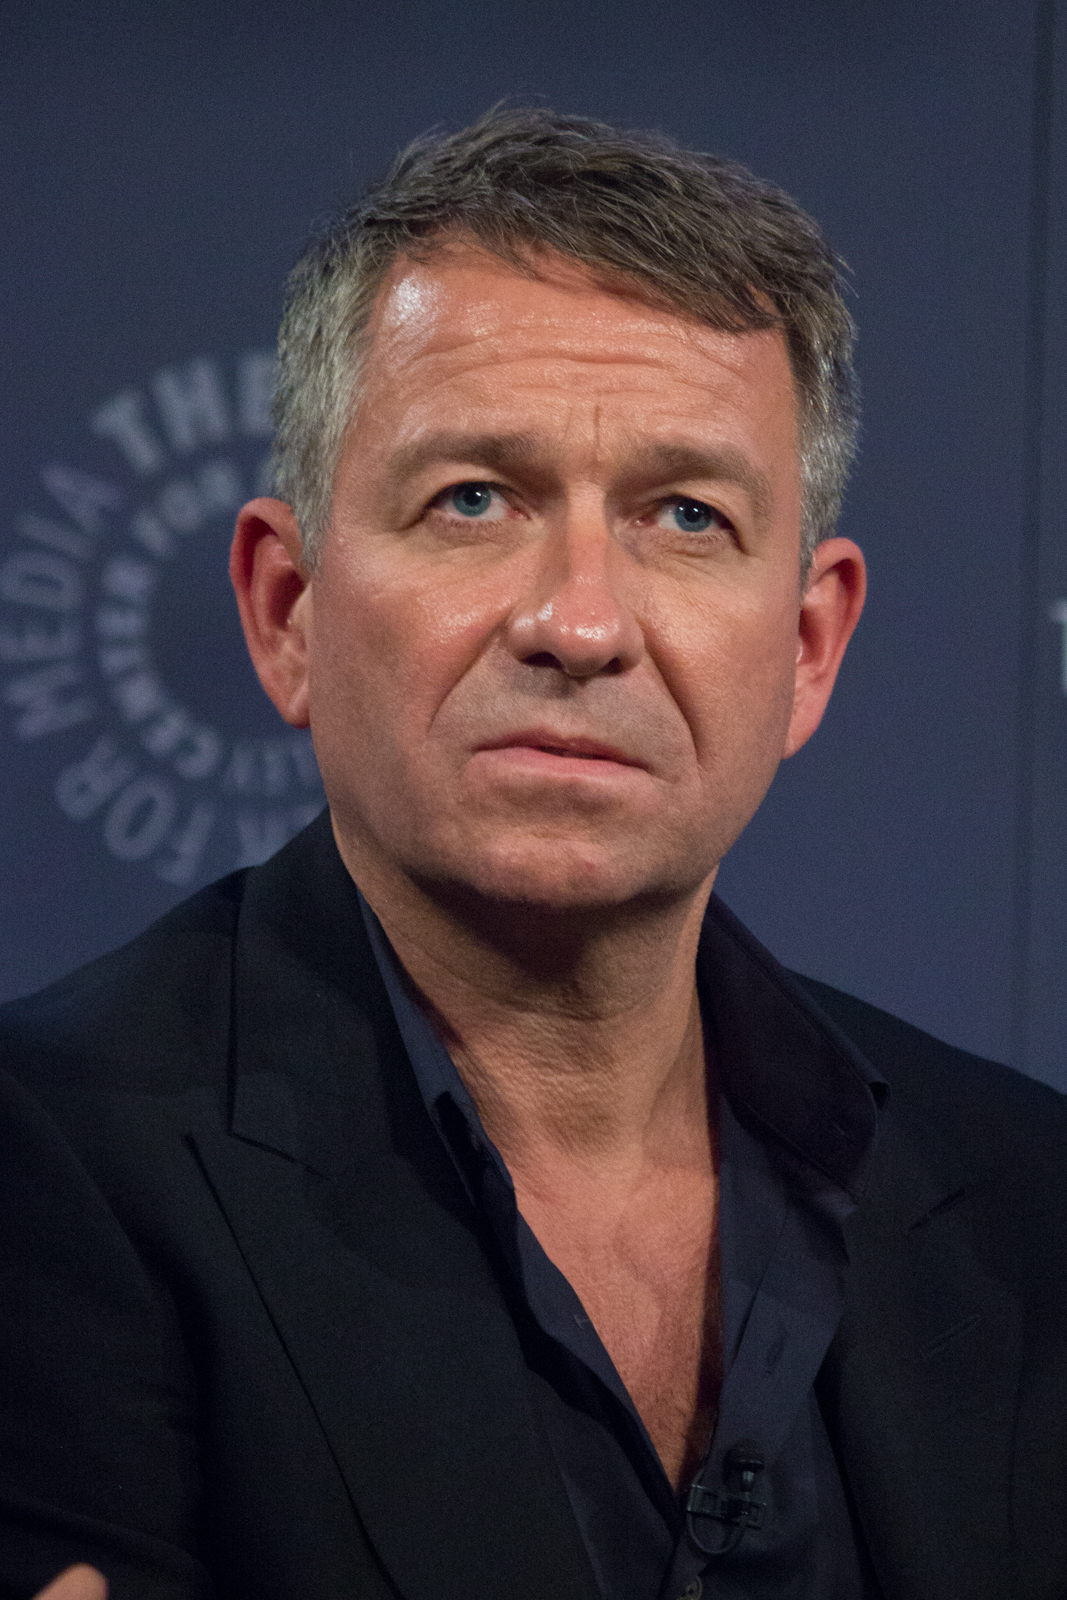 sean pertwee height